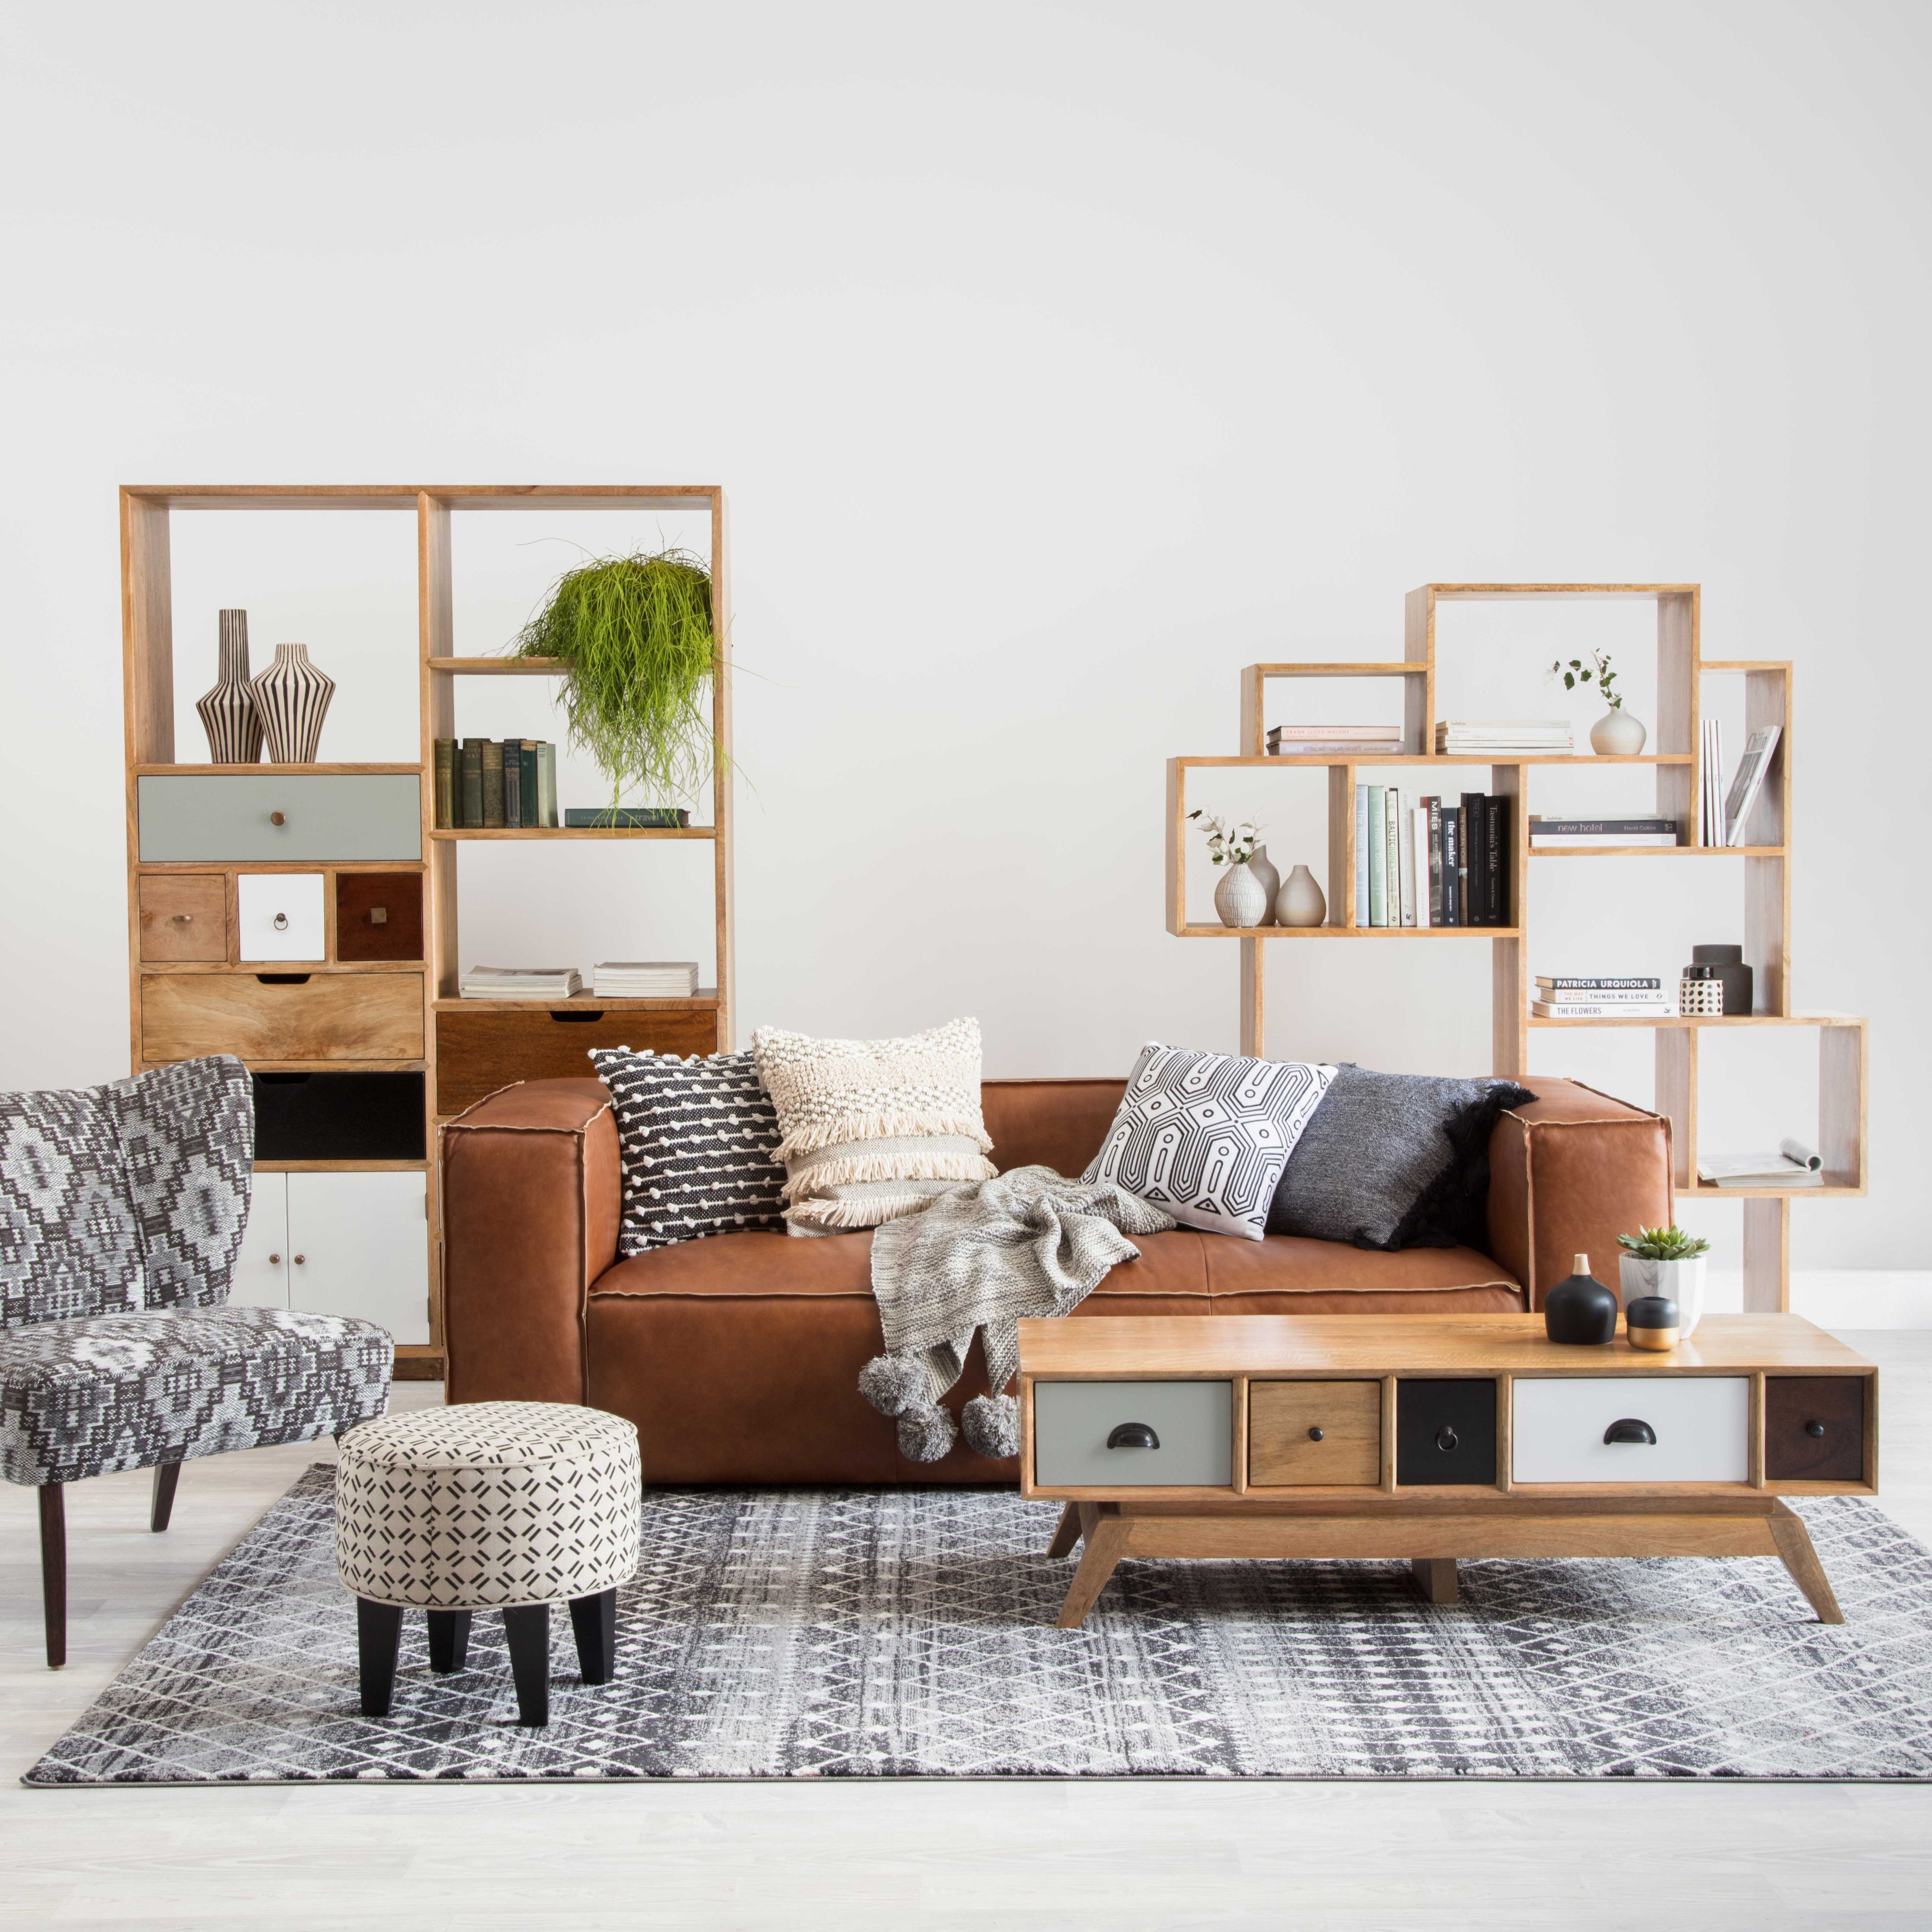 Shop Online Or In Store At OZ Design Furniture   The Home Of Style And  Options For Modern Furniture And Homewares Collections.